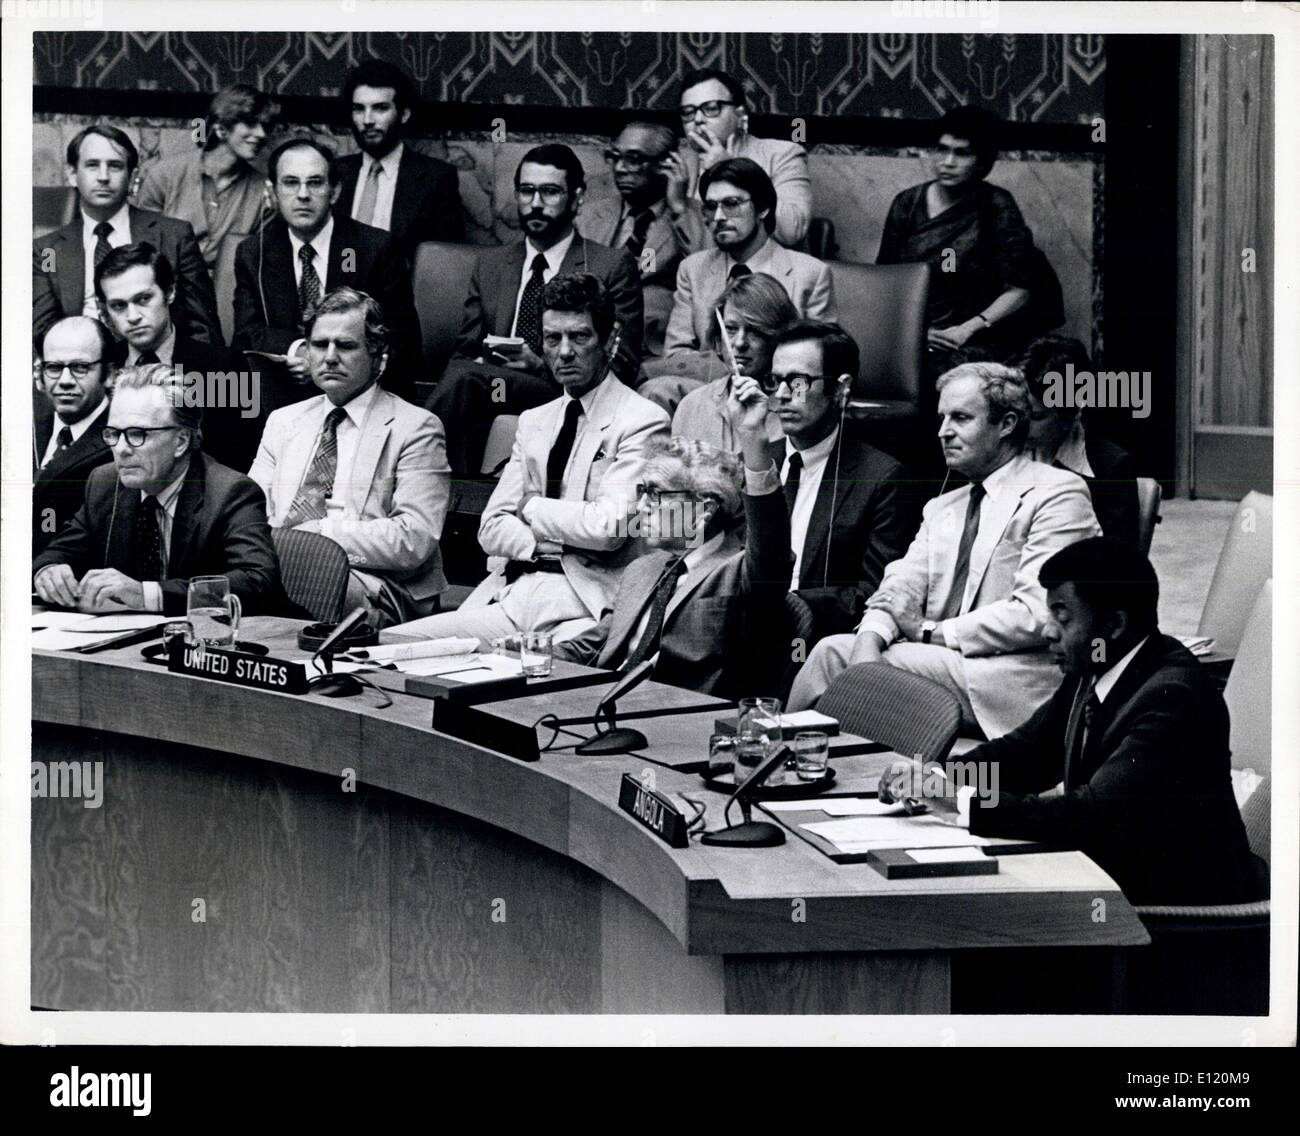 Aug. 31, 1981 - Unites Nations, New York: United states vetoes United Nations Security Council resolution condemning the South African Military incursion into Angola. Photo Shows United State's Alternate Representative Charles M. Lichenstein casting U.S. veto. At table, Left: Sir Anthony Parsons of the United Kingdom and Angolan Permanent Representative Elisio de Figueiredo.South African Representative looking on (seated background upper left with glasses) - Stock Image